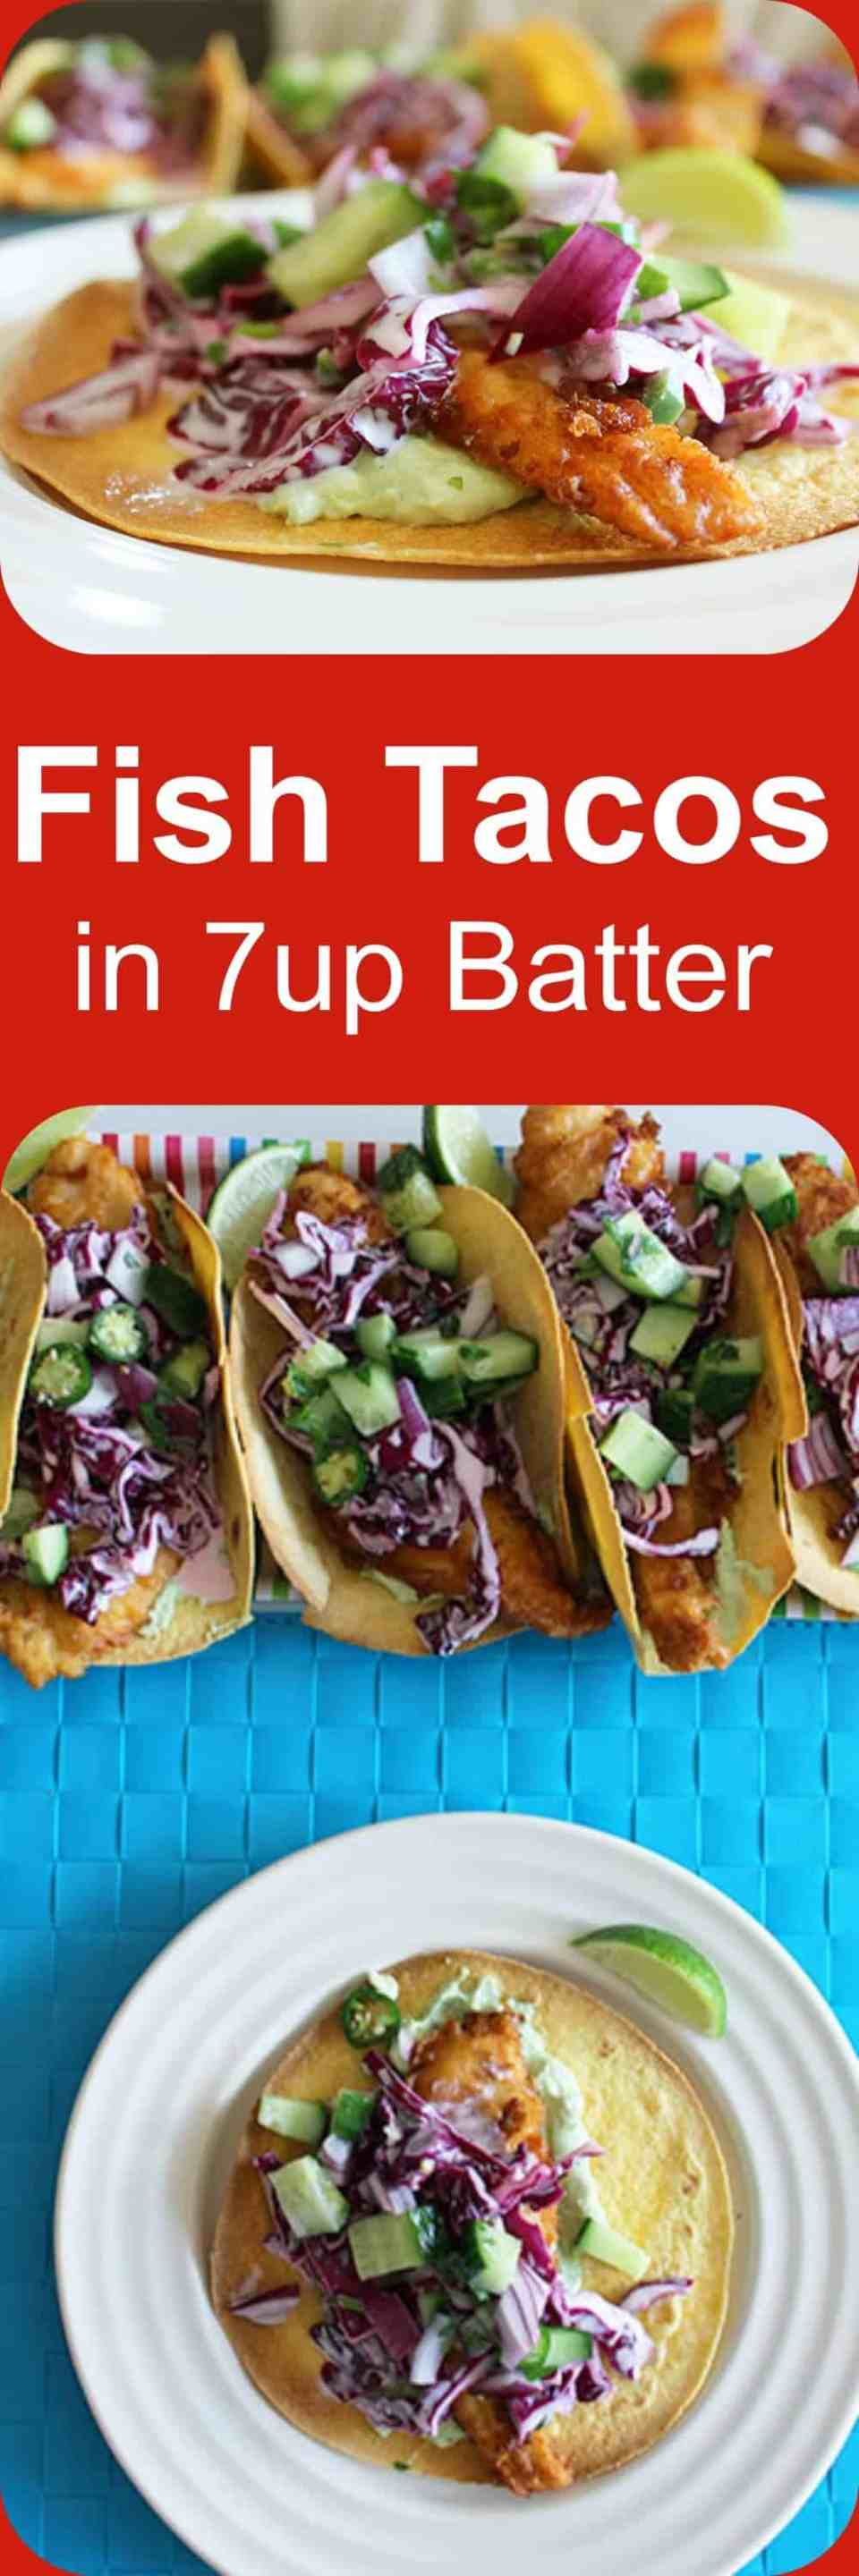 The batter on these fish tacos is so fresh and light!